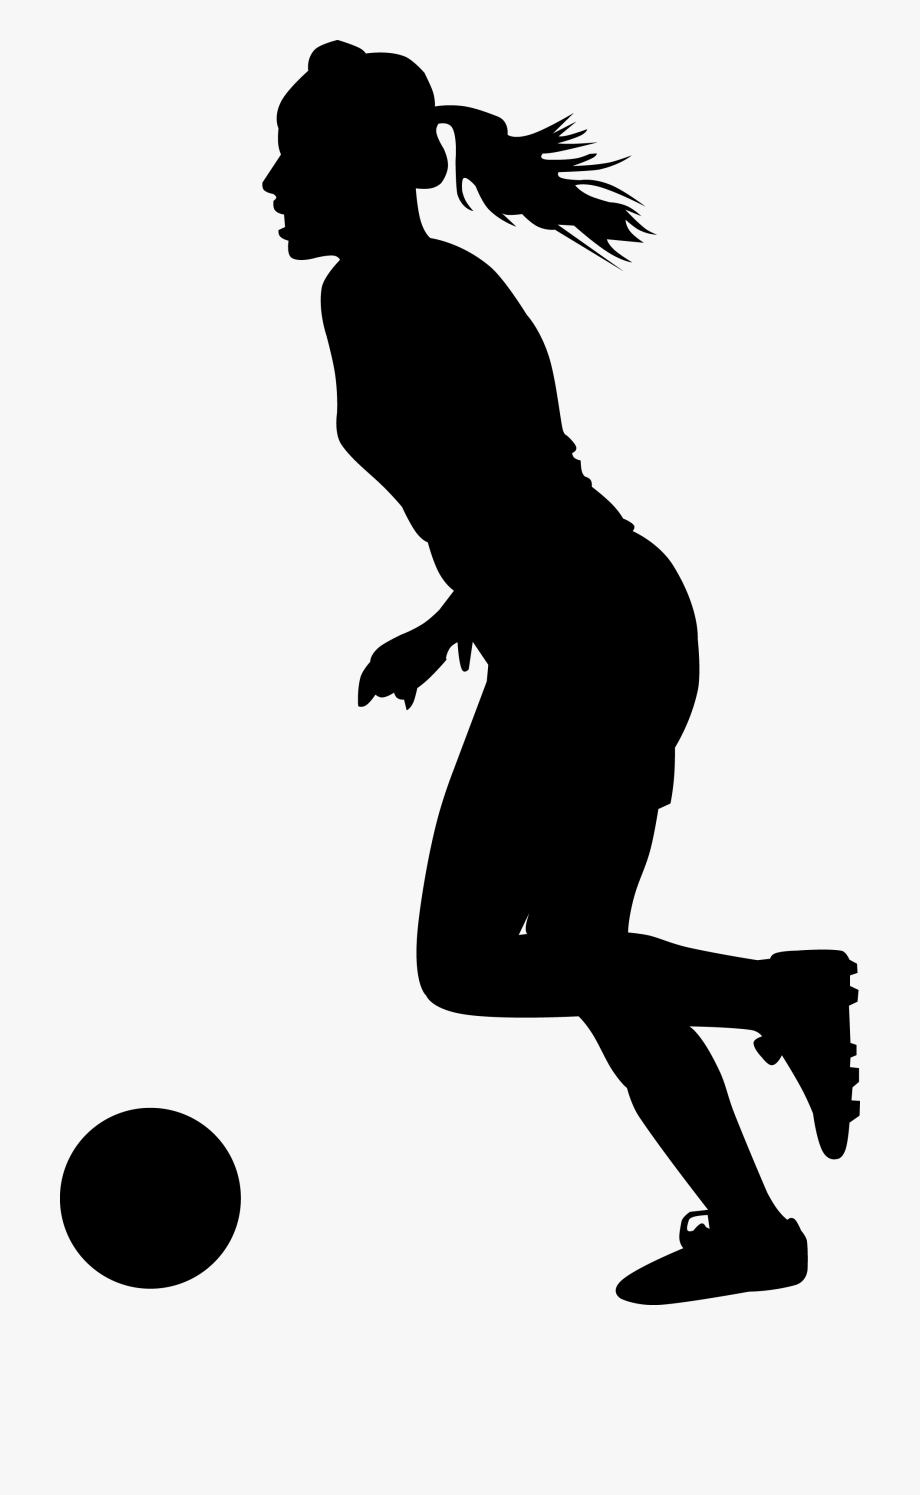 Png Of Soccer.